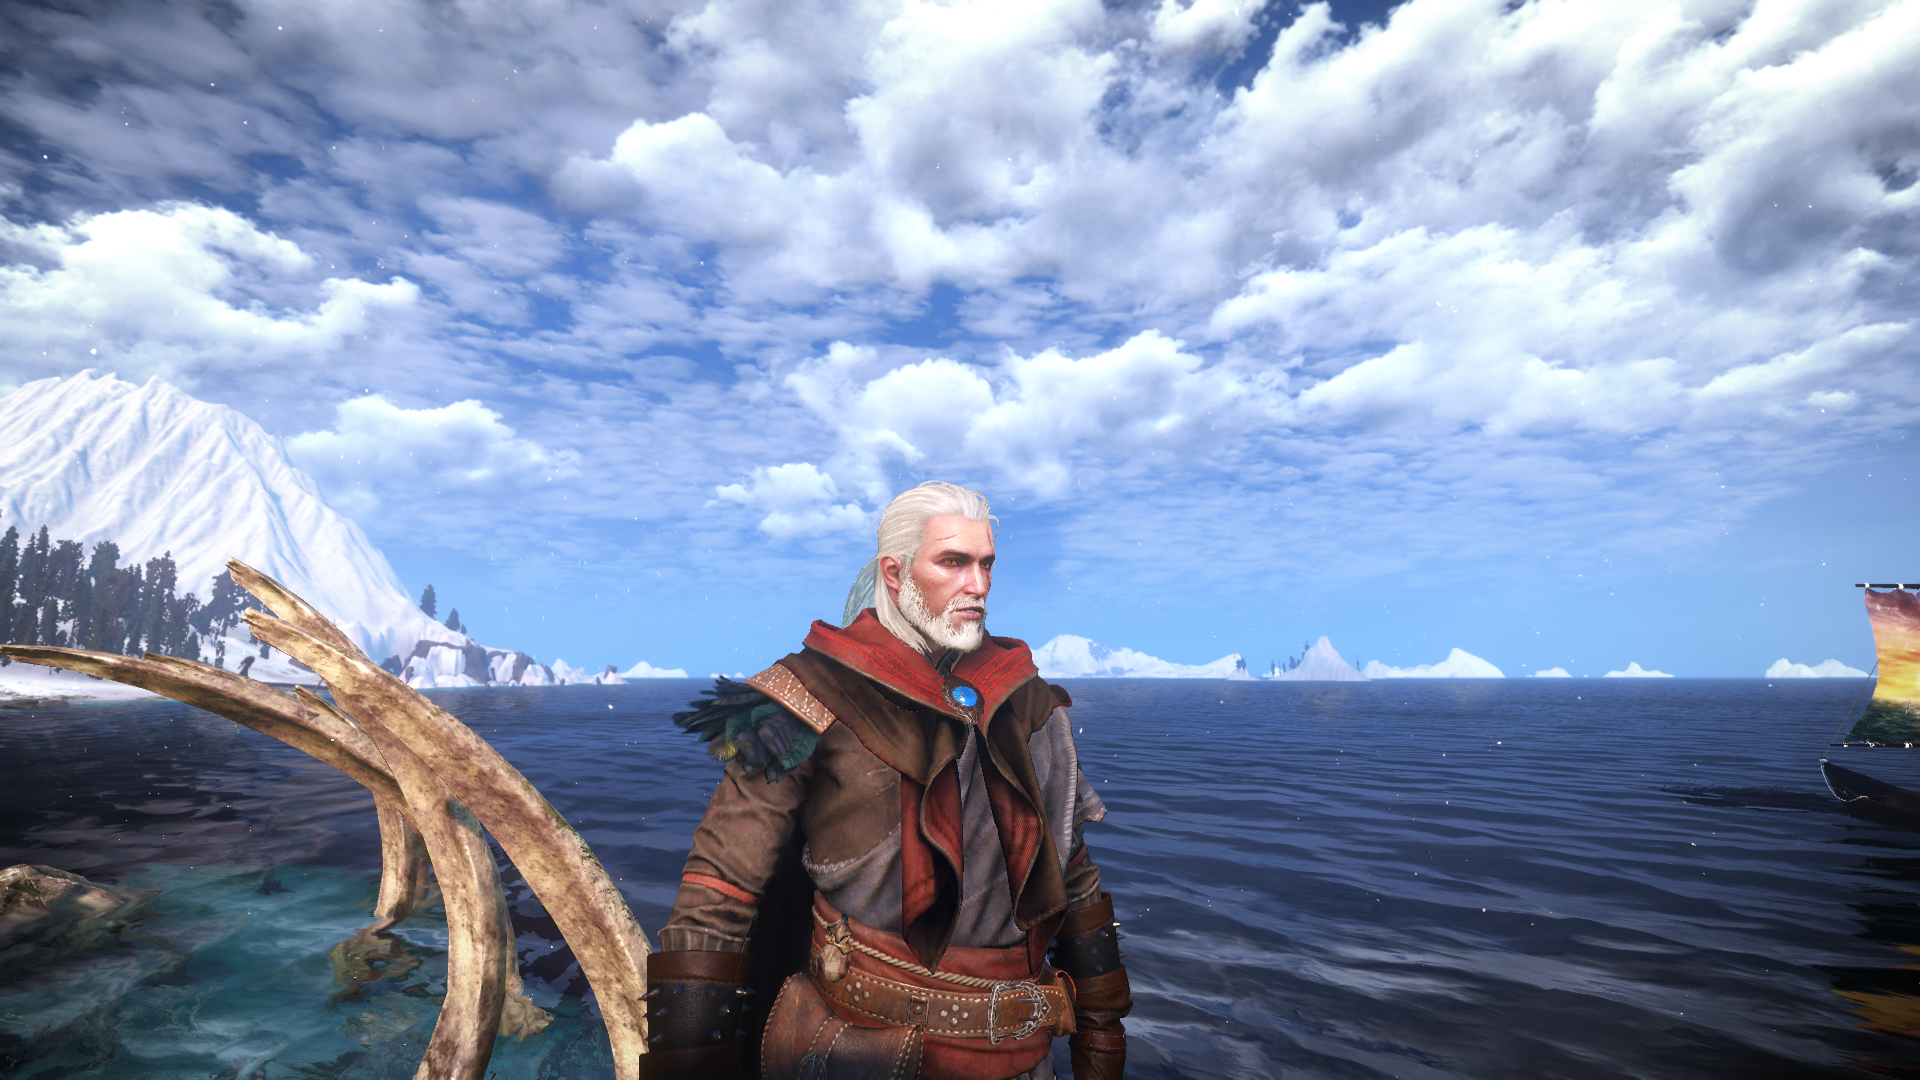 The-Witcher-3-Skellige-Weather.png - The Witcher 3: Wild Hunt